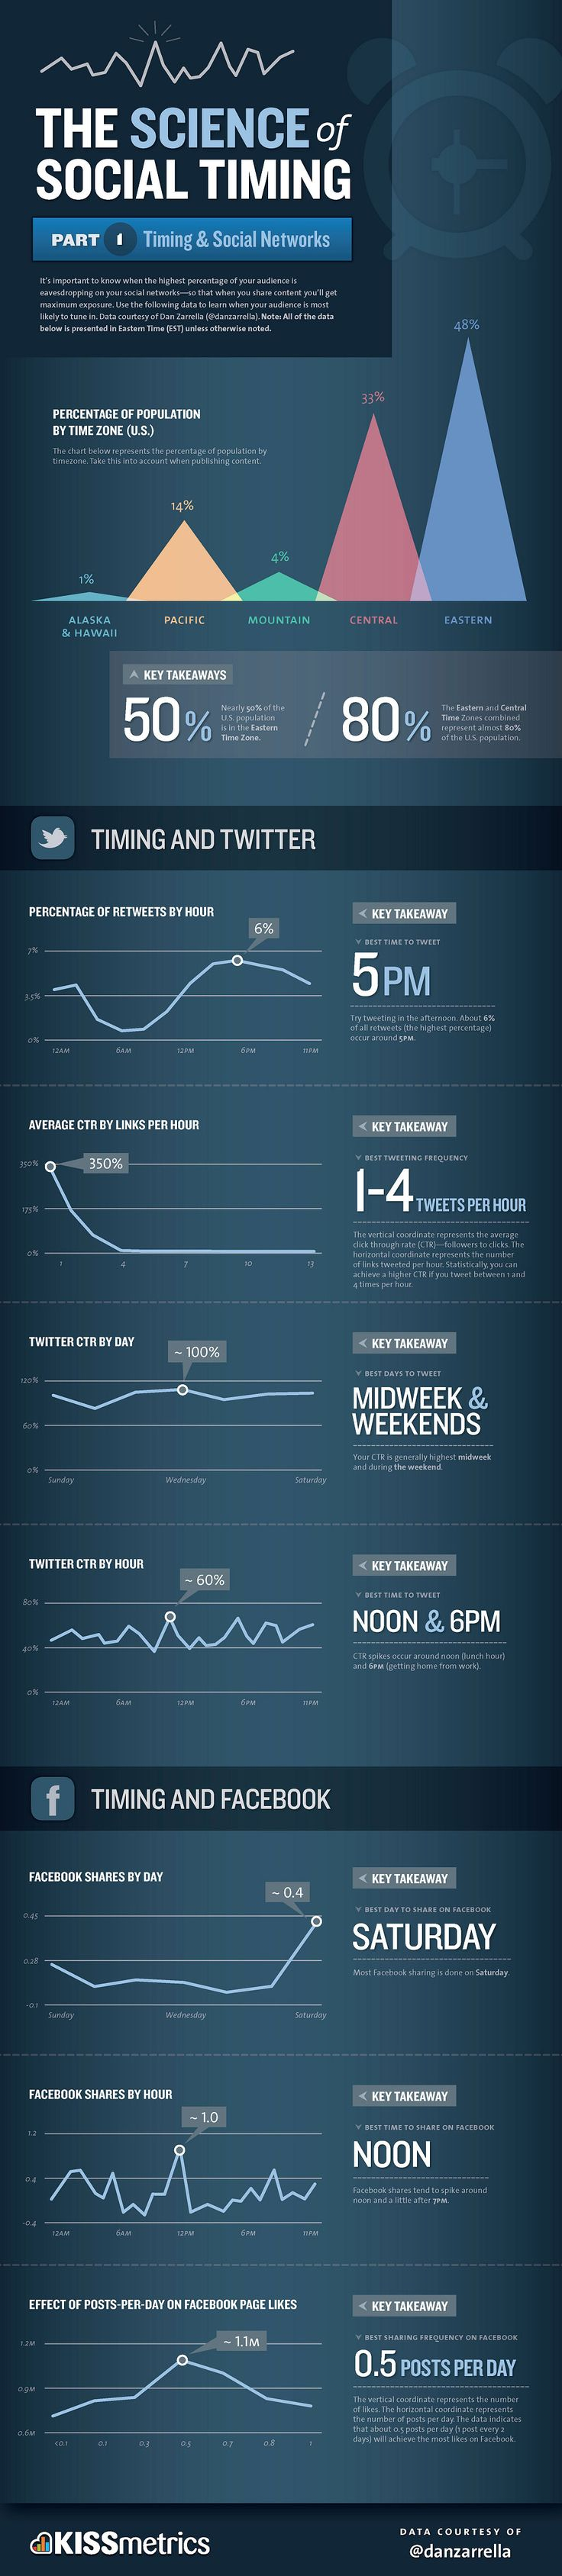 What Is The Best Time To Post To Facebook?